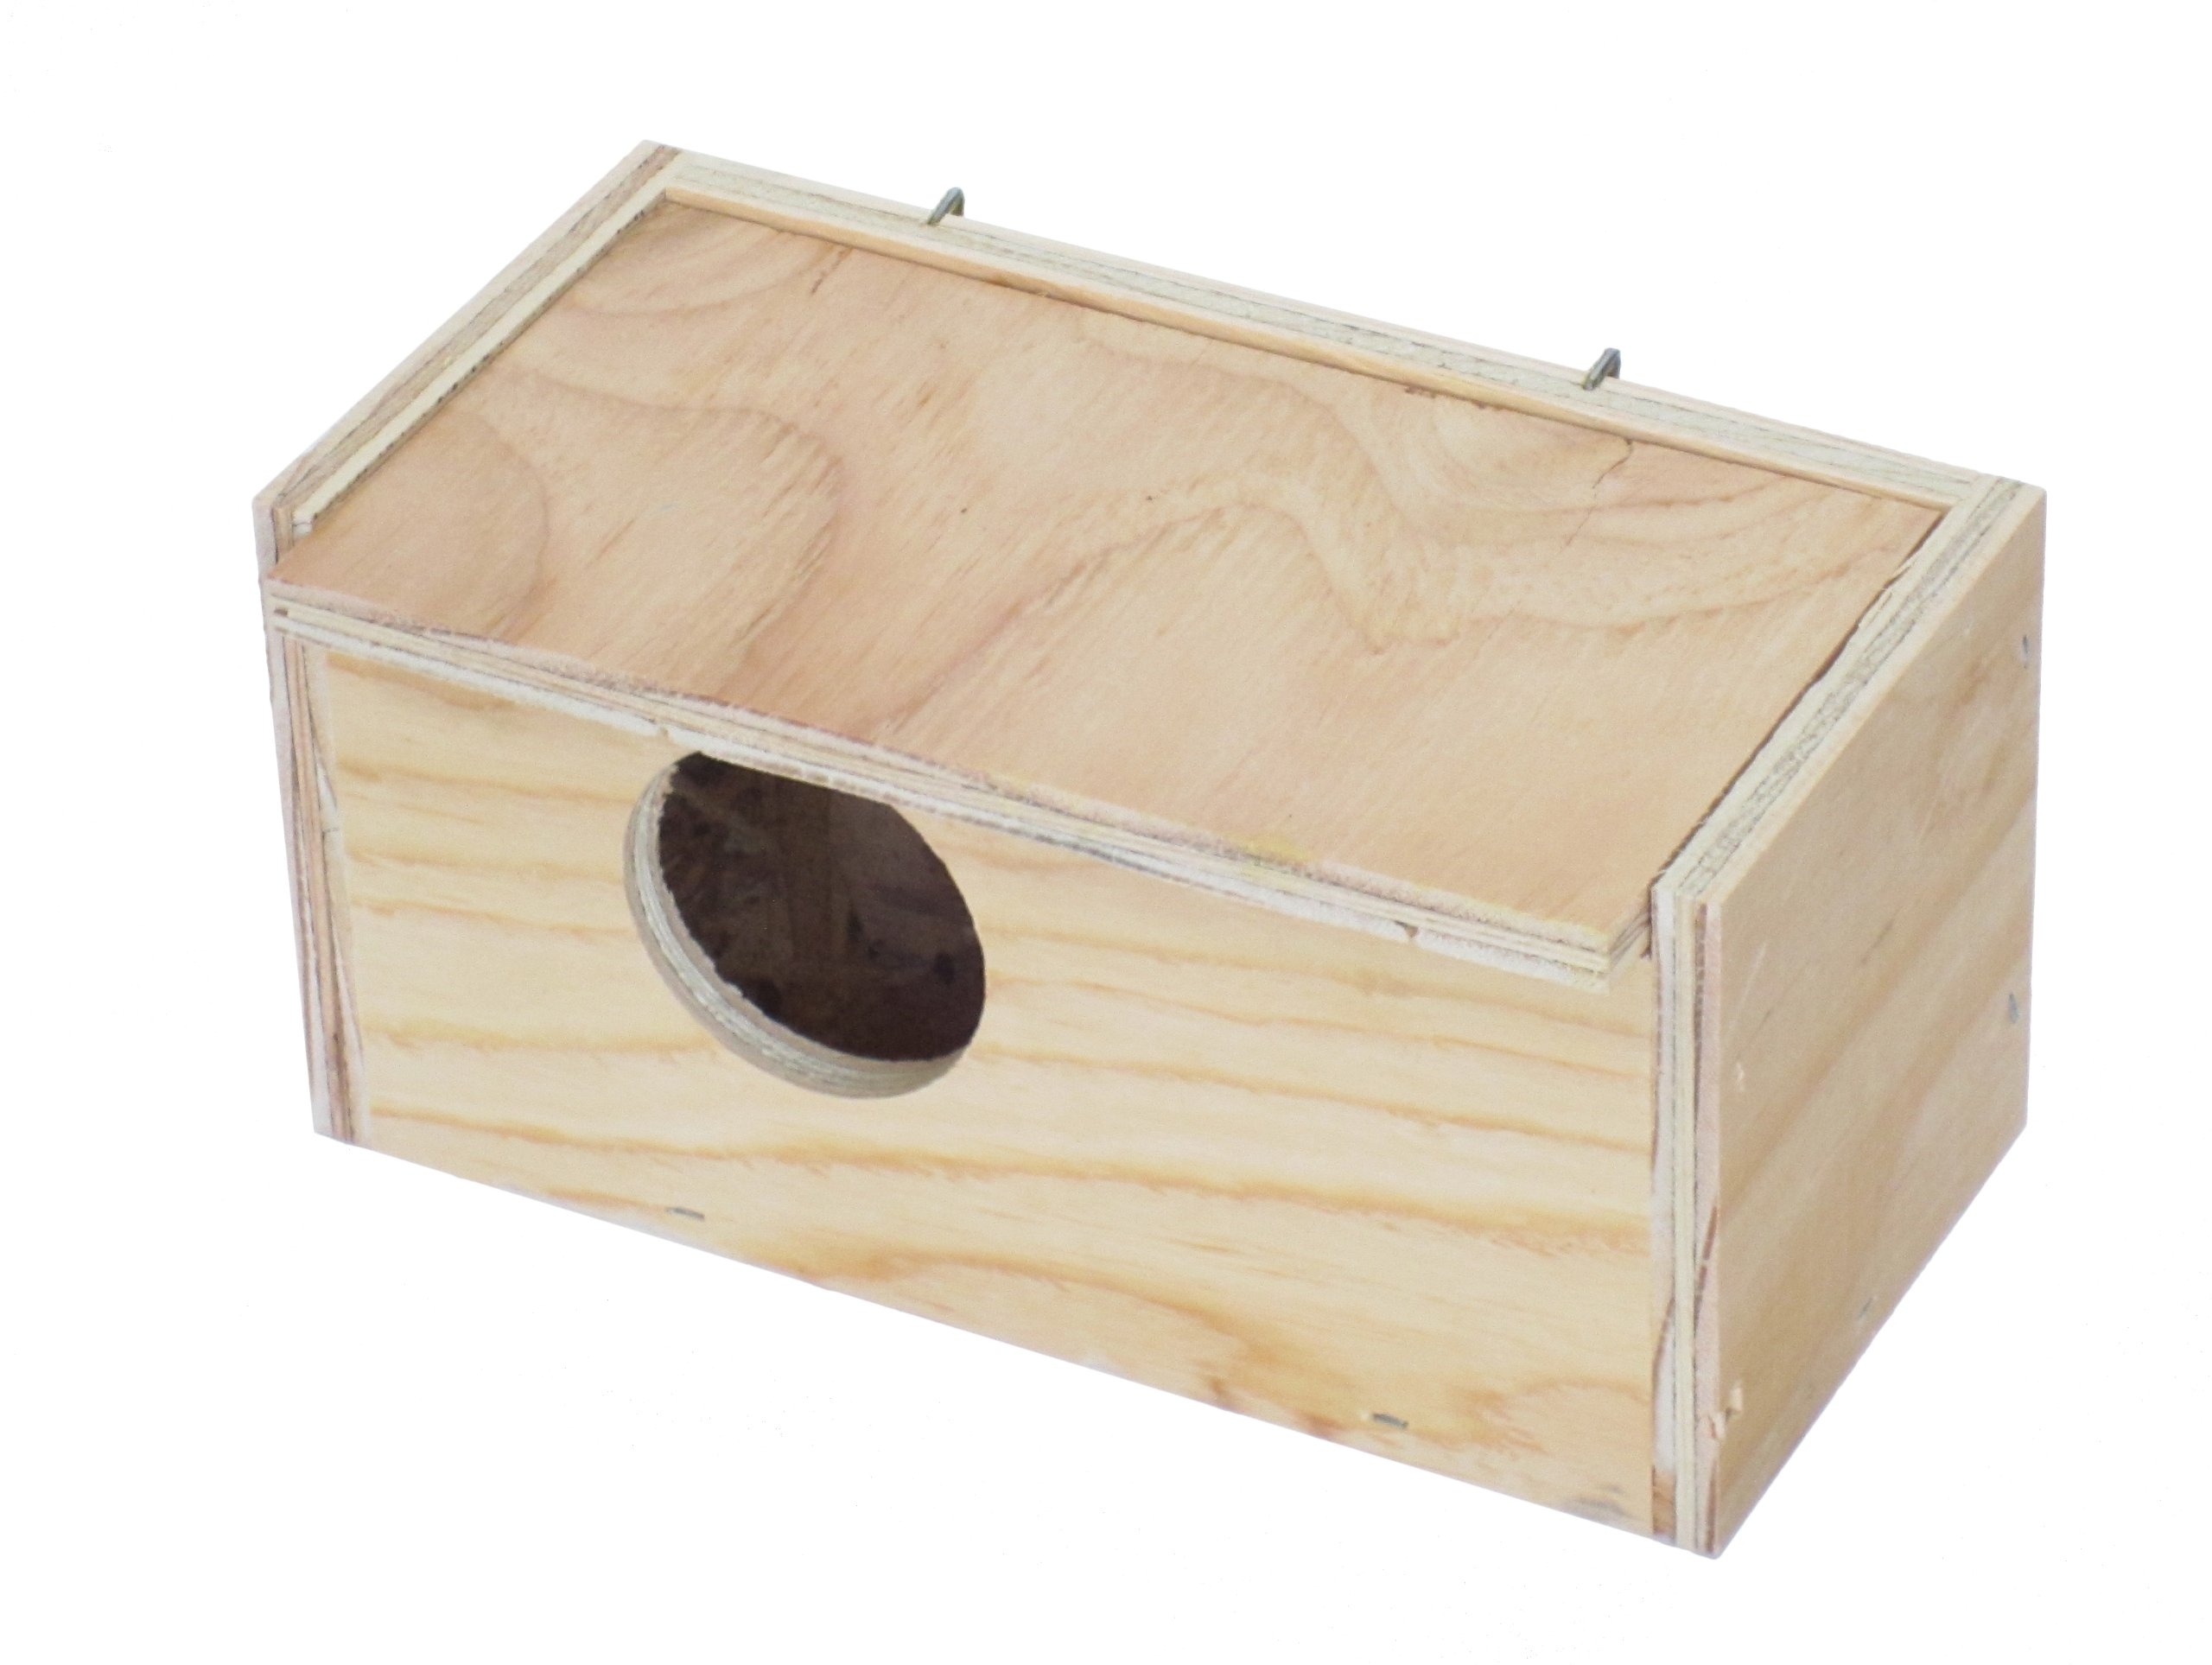 YML Assembled Wooden Nest Box for Inside Mount, Small by YML